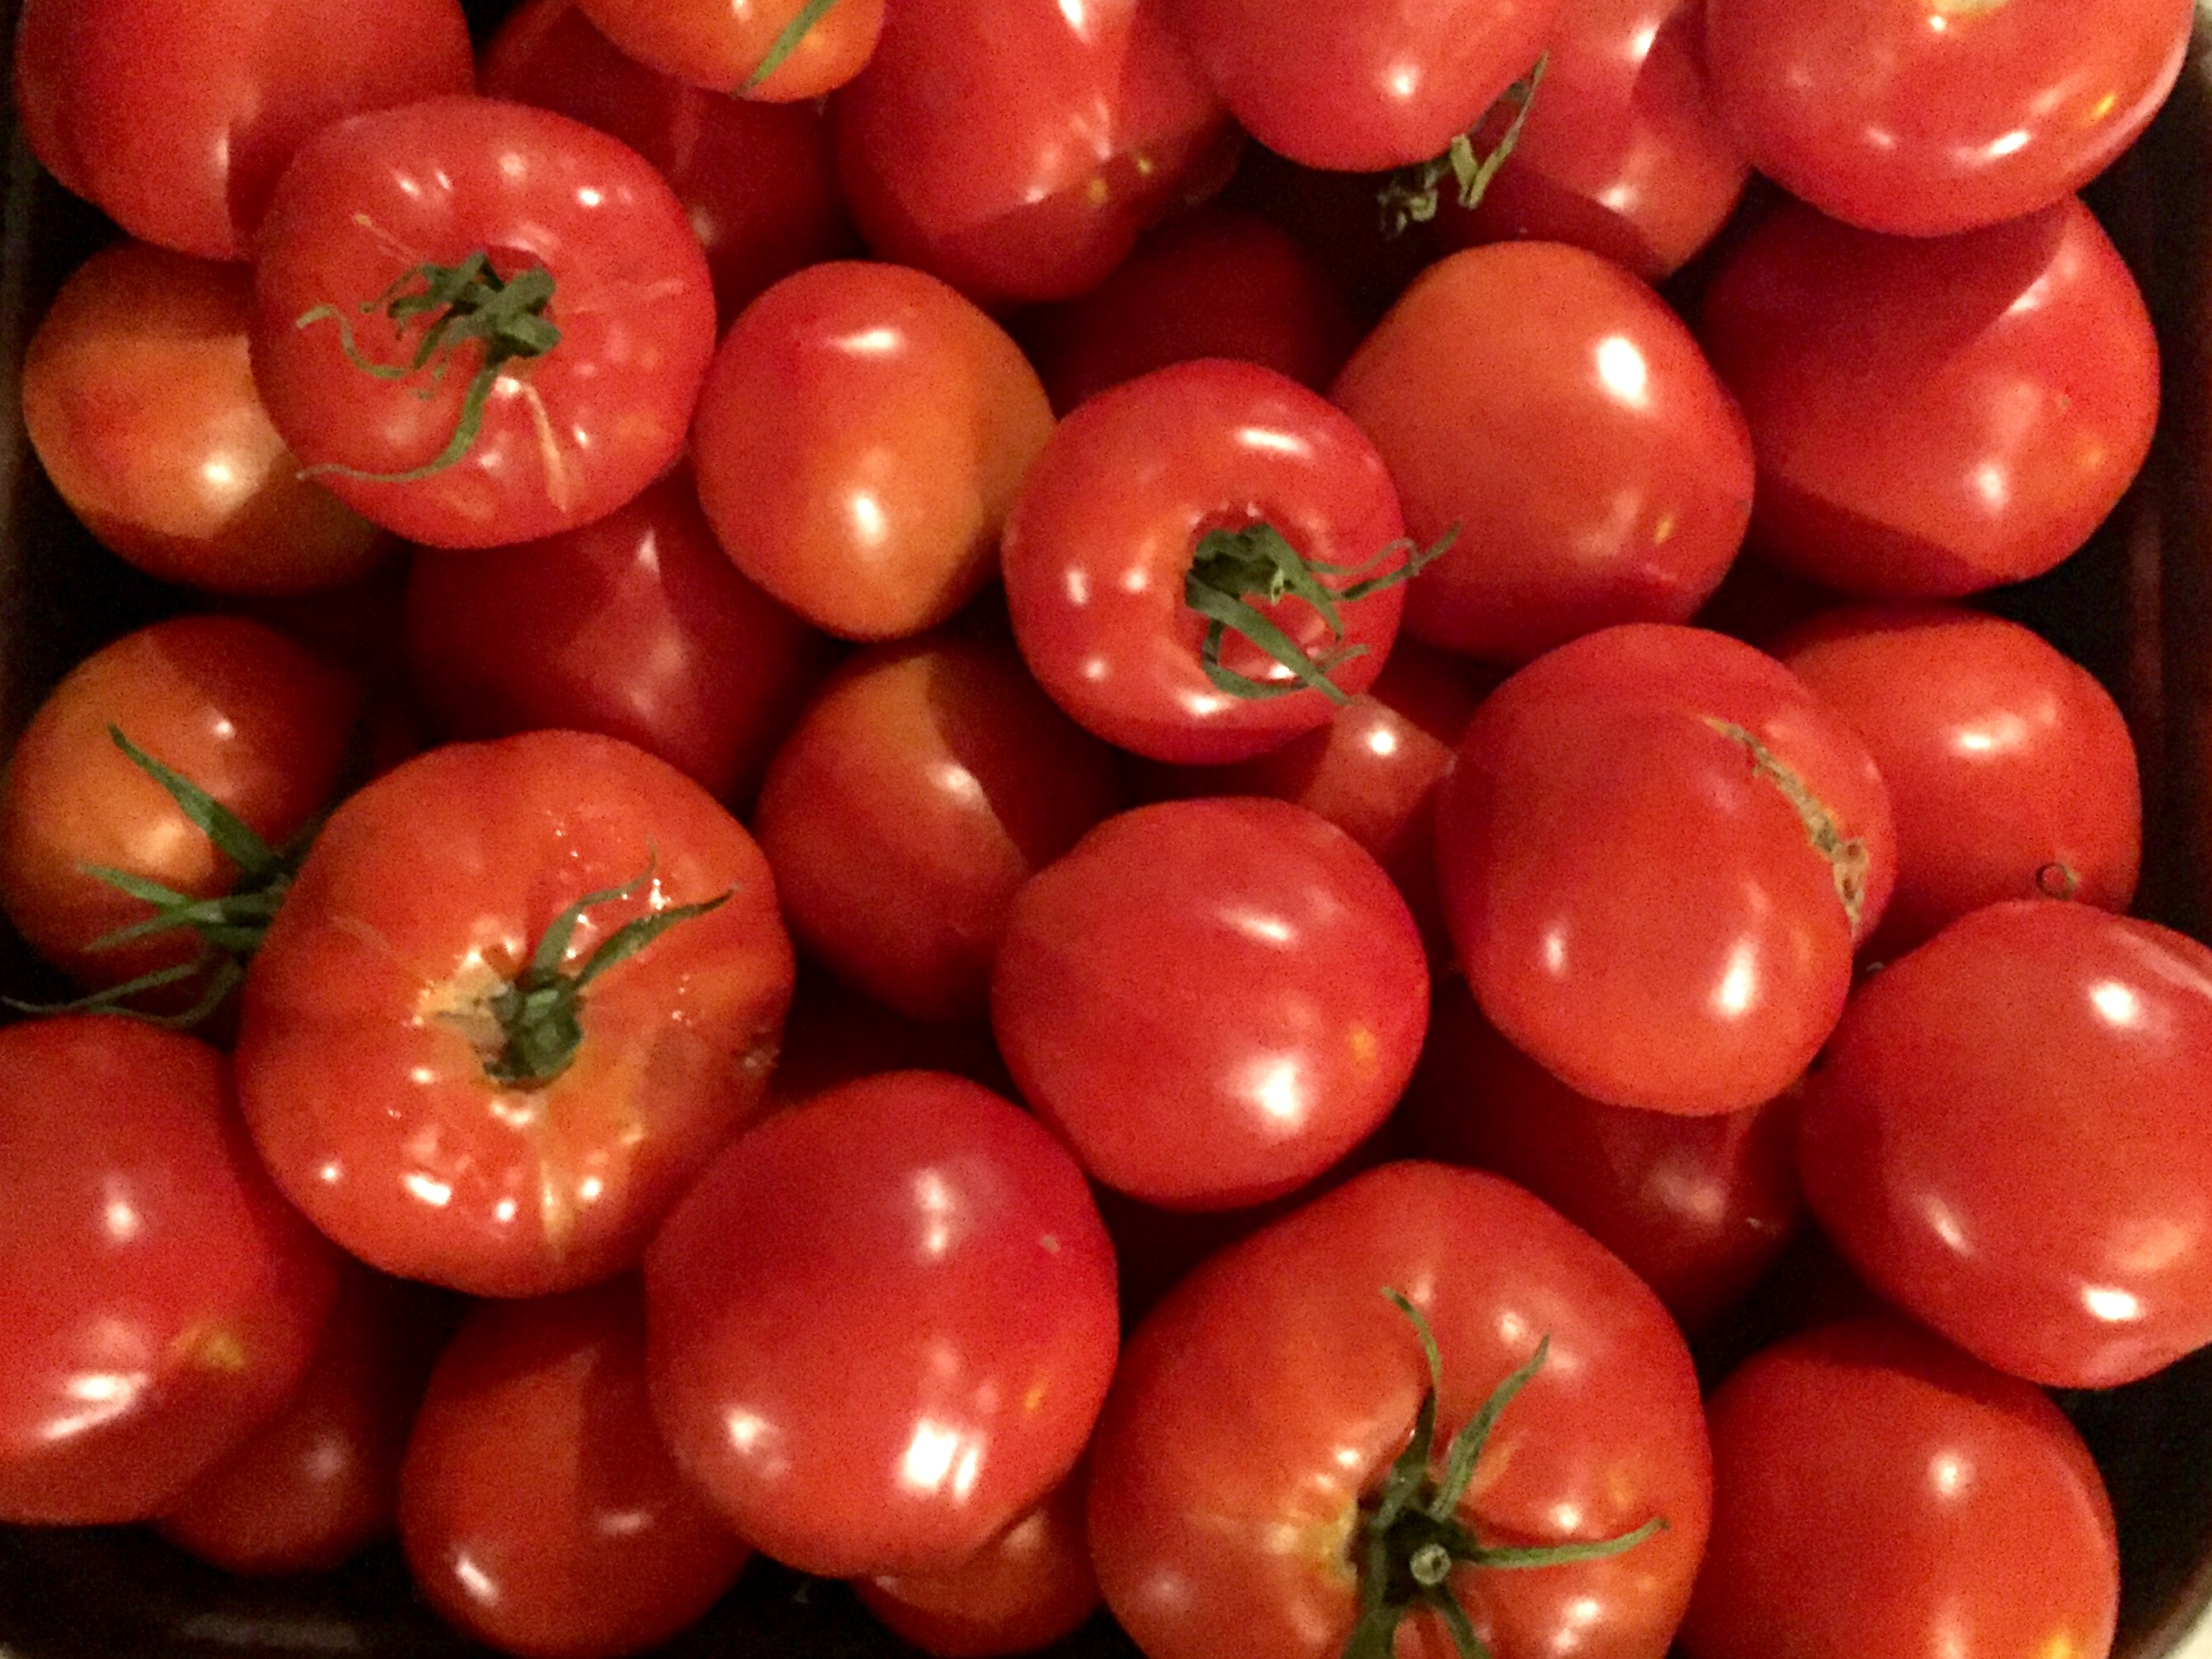 Tomatoes are back for January 25!